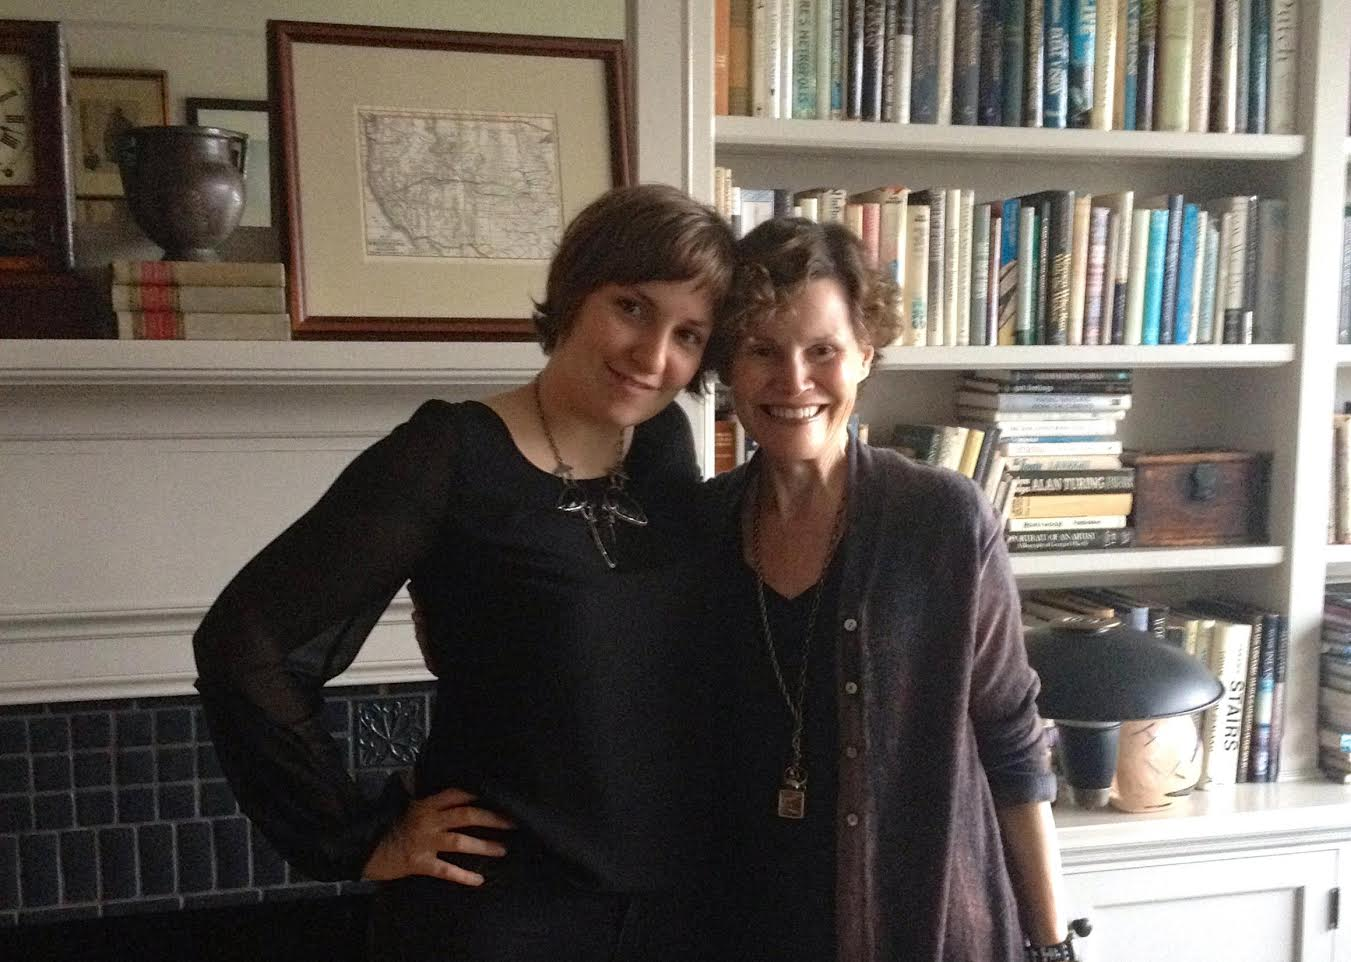 coming of age lena dunham interviews judy blume for the curious